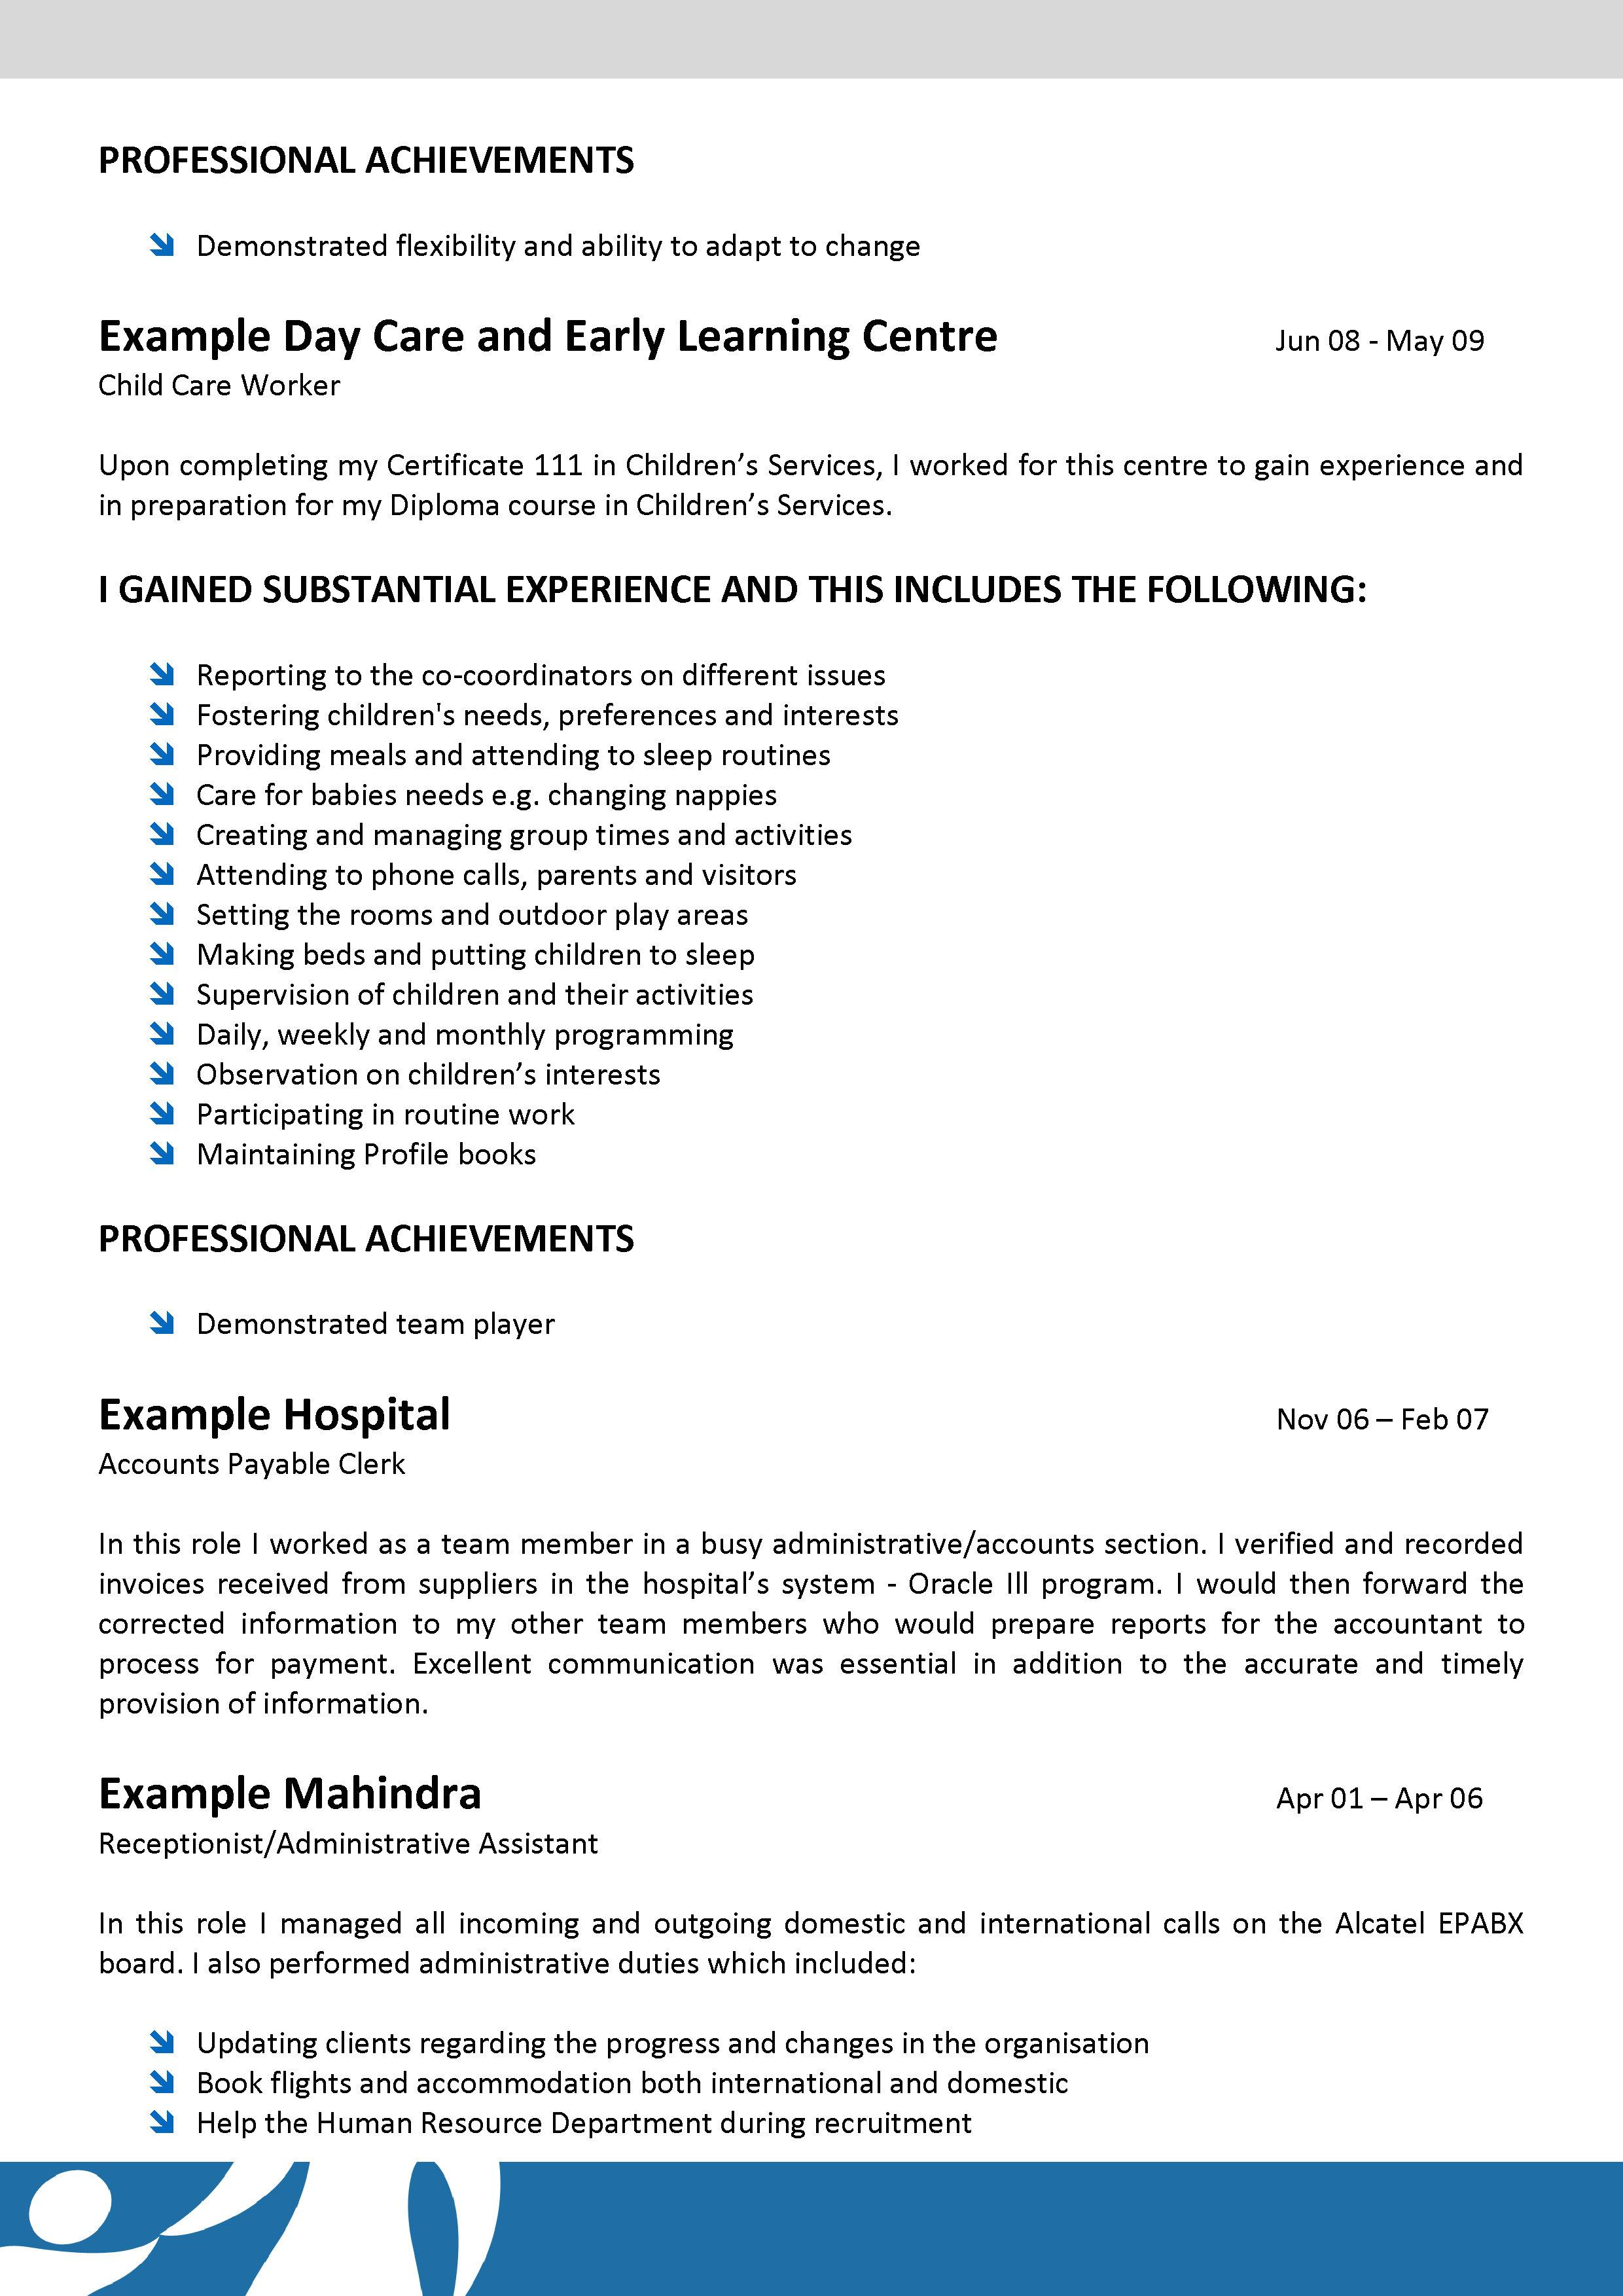 New Age Resume Template Aged Care Nursing Community Resume Template 005